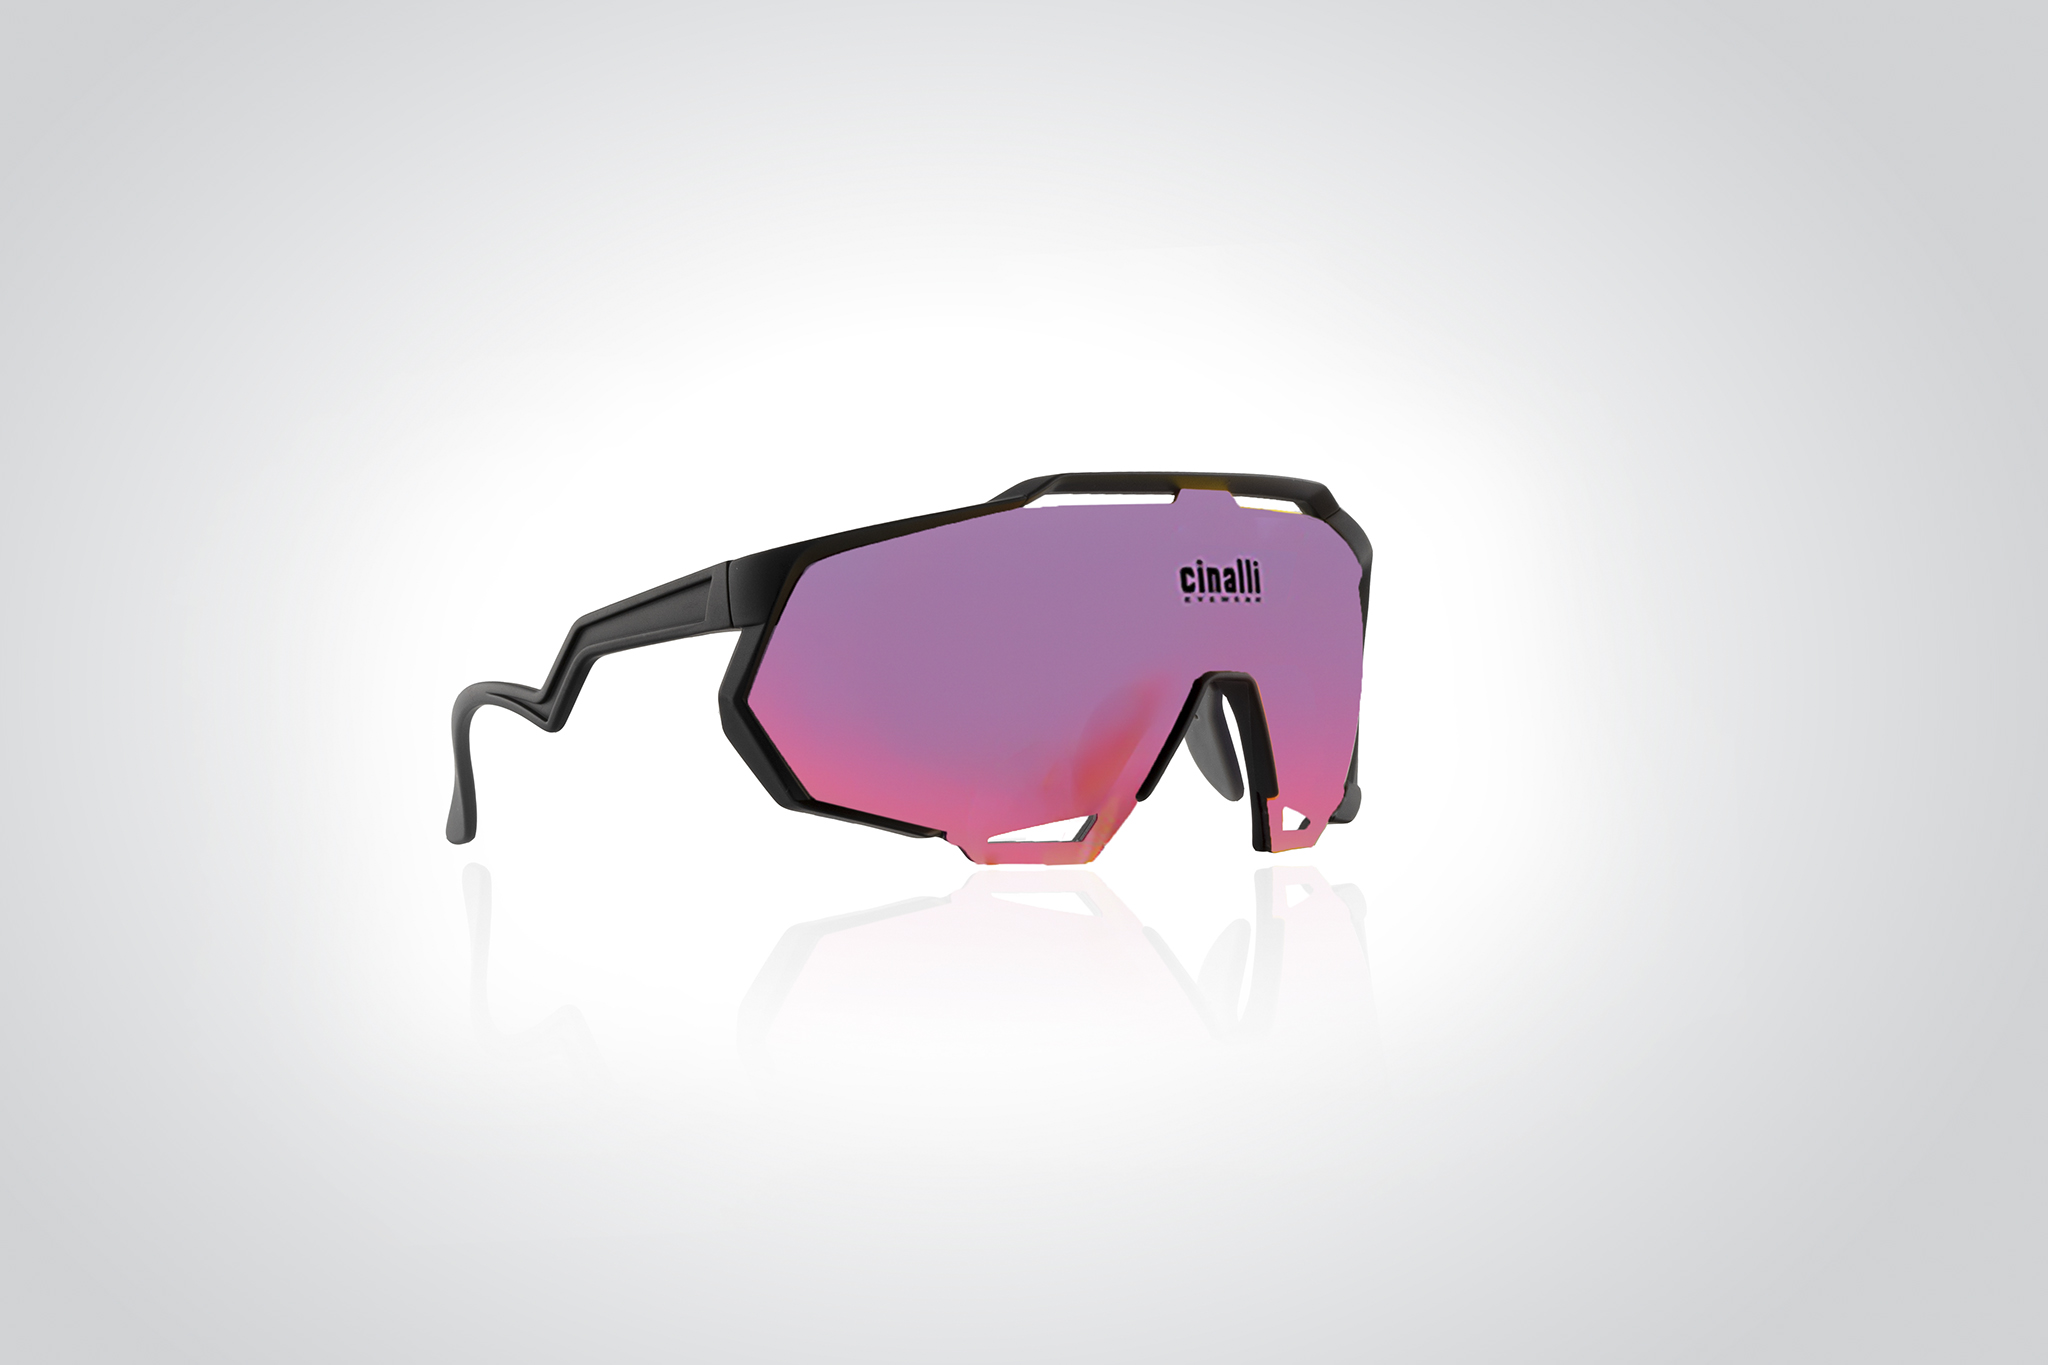 Cialli cycling glasses speed skating running marathon outdoor sports glasses polarizing color changing glasses